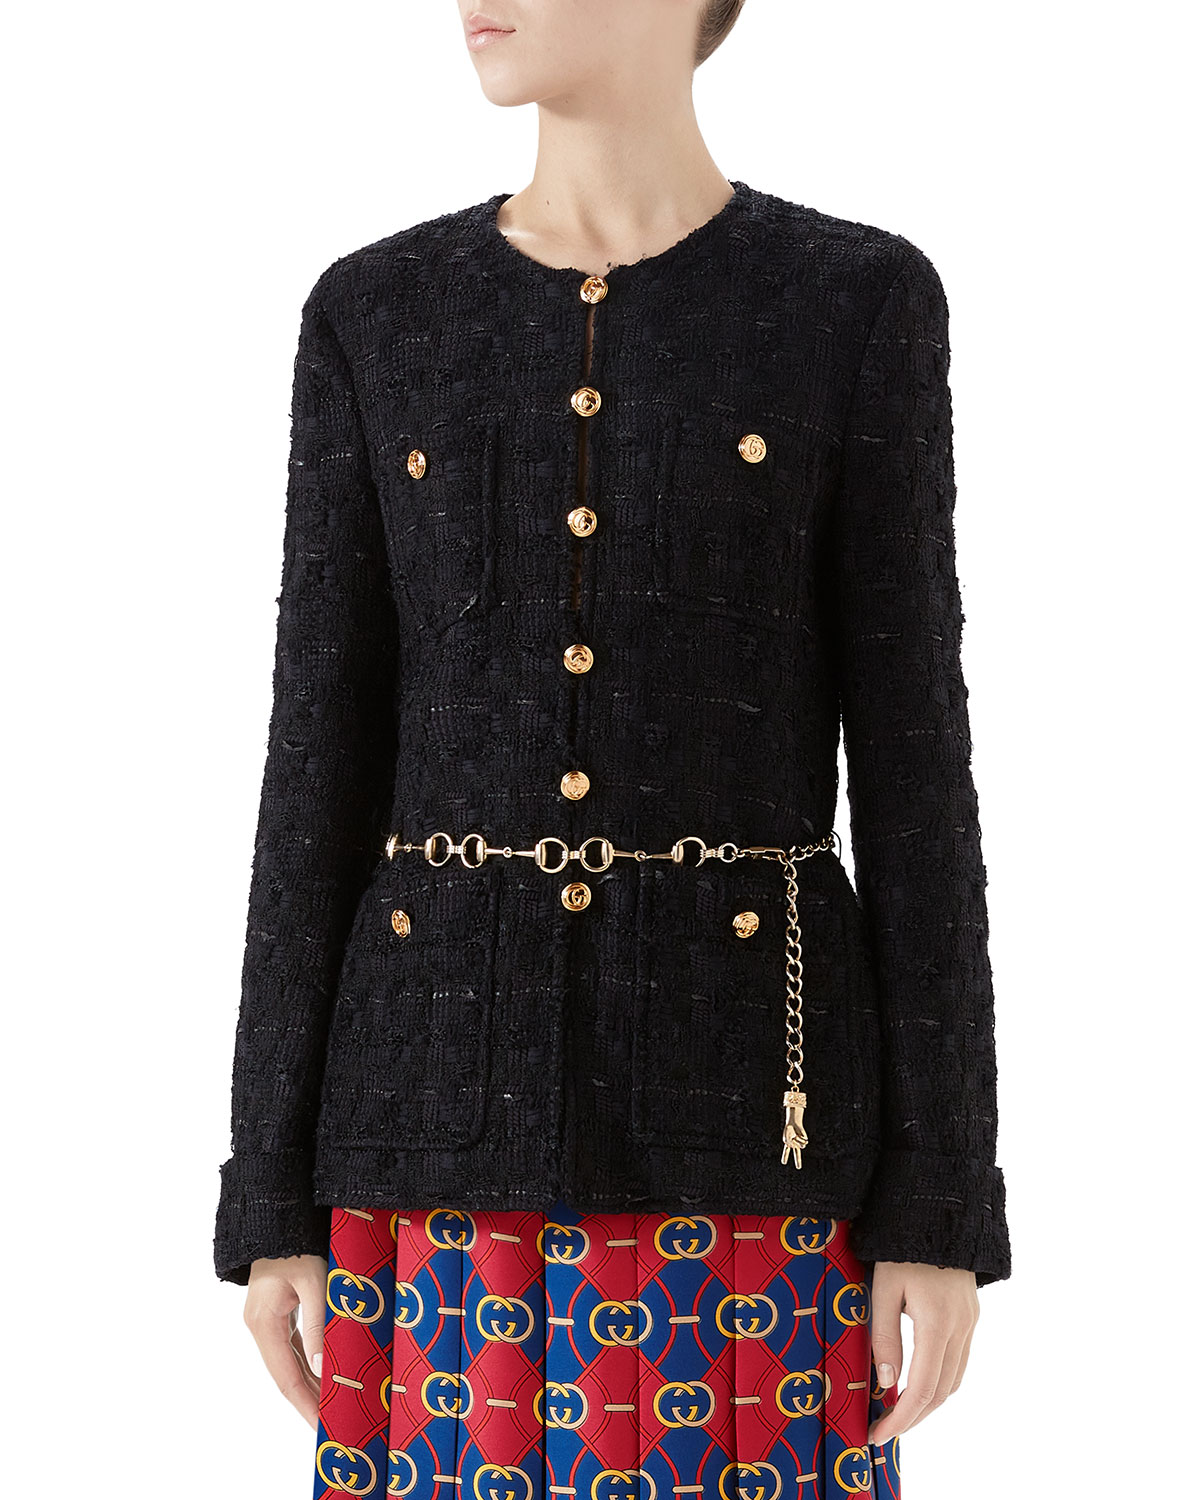 724a3272d Gucci Fitted Tweed Jacket with Chain Belt | Neiman Marcus